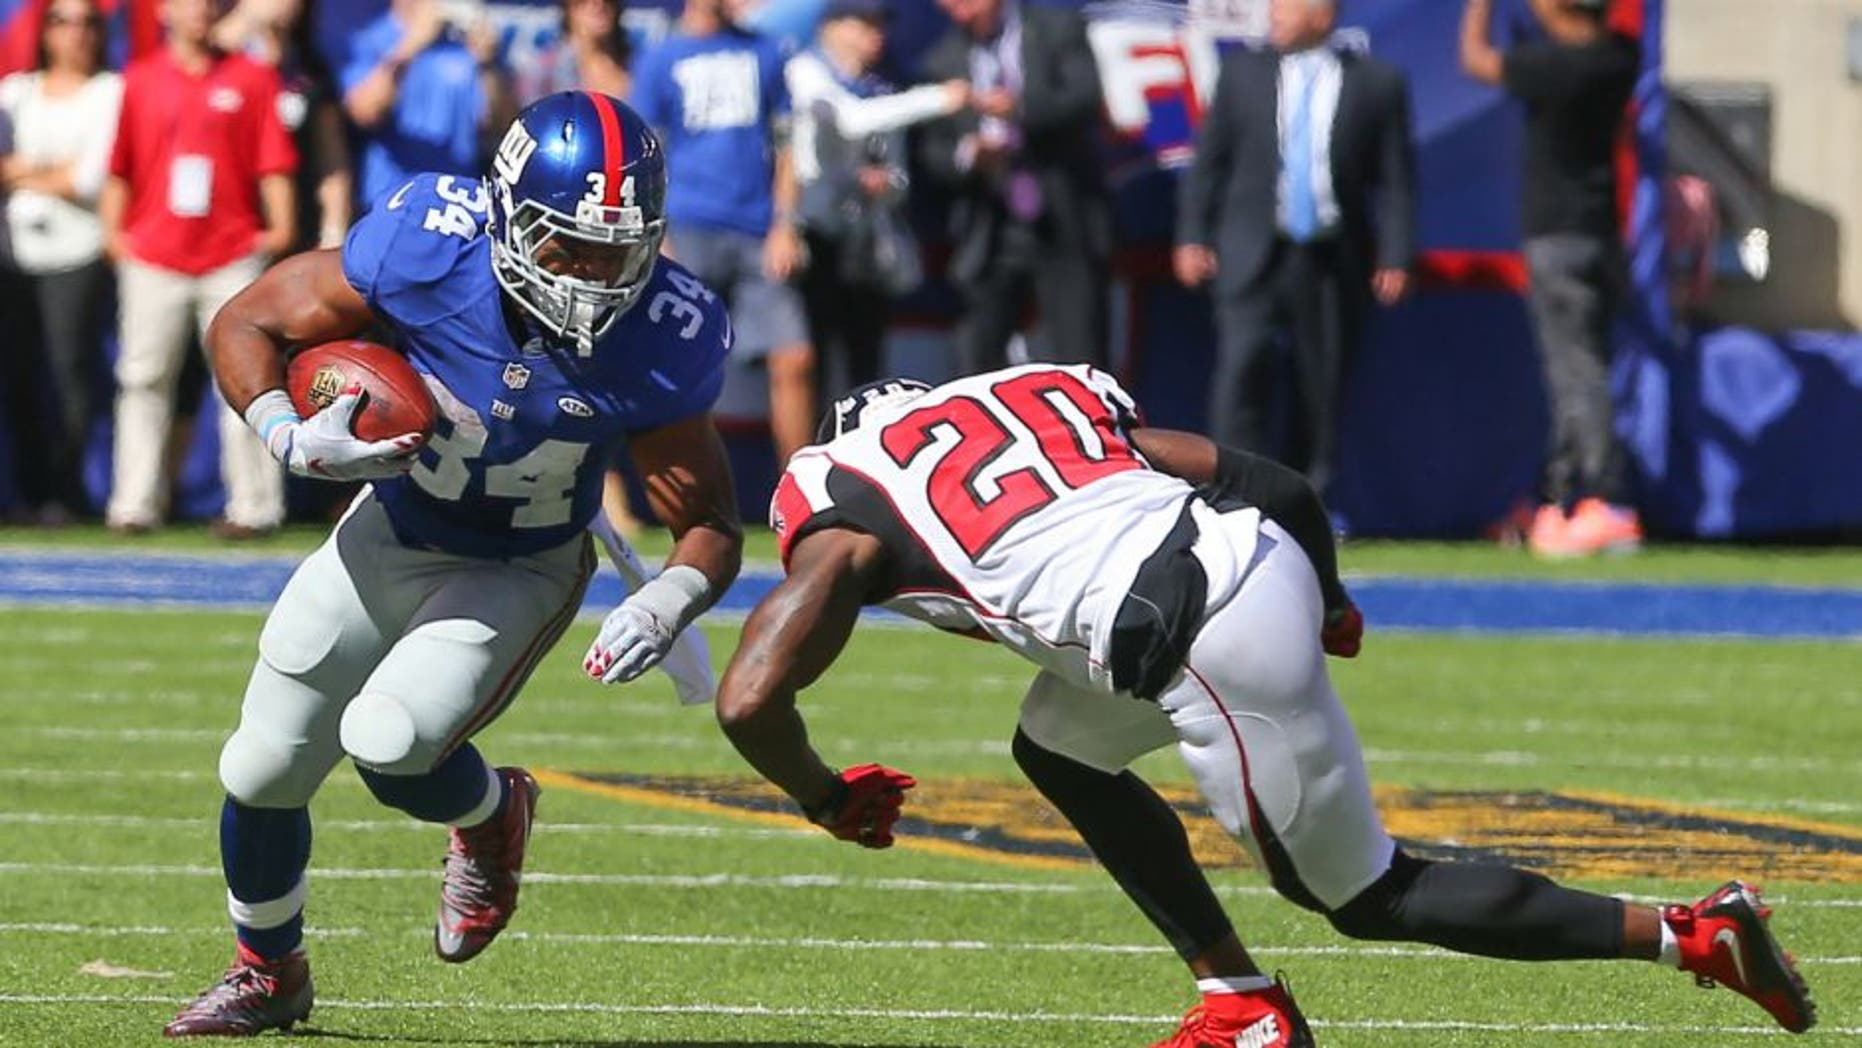 Sep 20, 2015; East Rutherford, NJ, USA; New York Giants running back Shane Vereen (34) runs with the ball while trying to avoid a tackle attempt by Atlanta Falcons defensive back Phillip Adams (20) during the first half at MetLife Stadium. Mandatory Credit: Ed Mulholland-USA TODAY Sports